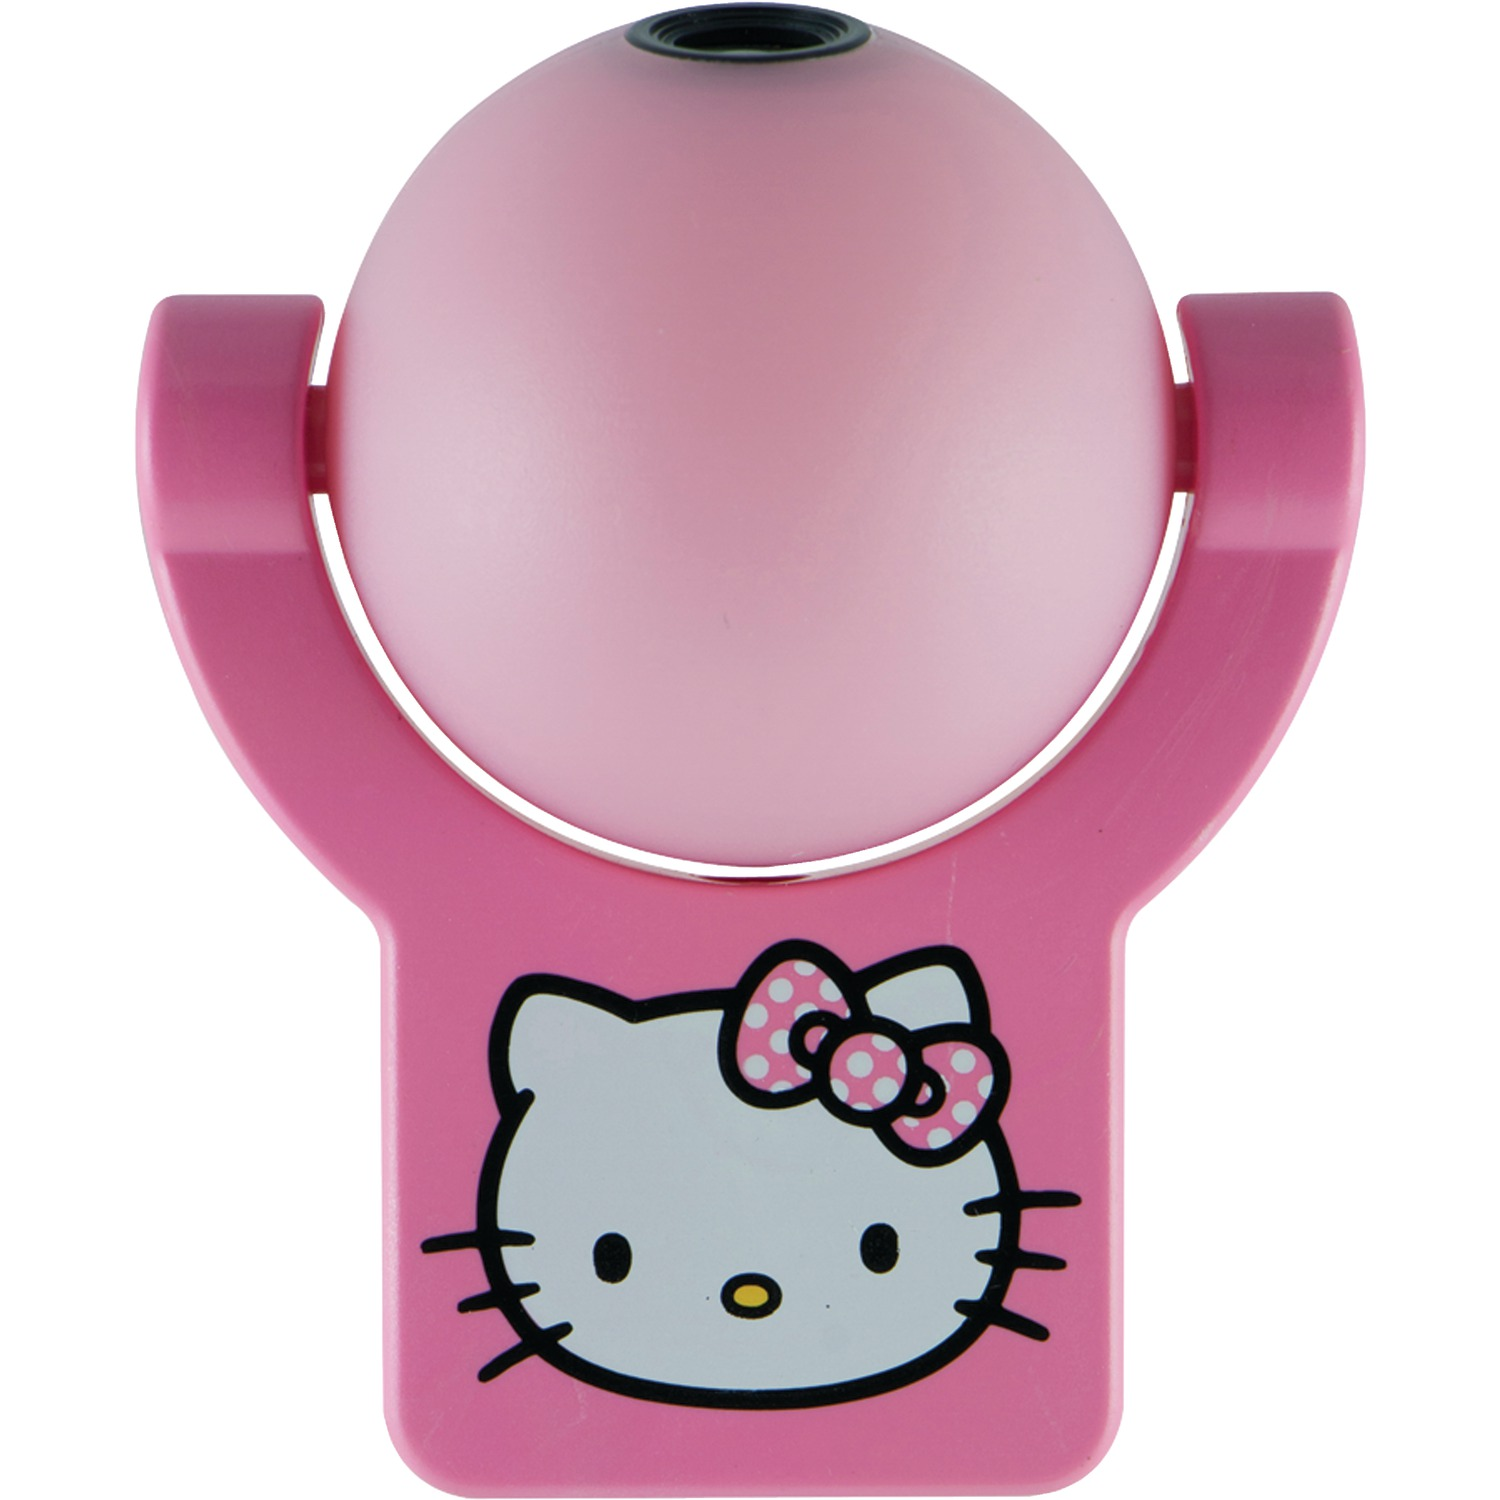 hello kitty 33738 led projectables r hello kitty r plug in night light. Black Bedroom Furniture Sets. Home Design Ideas